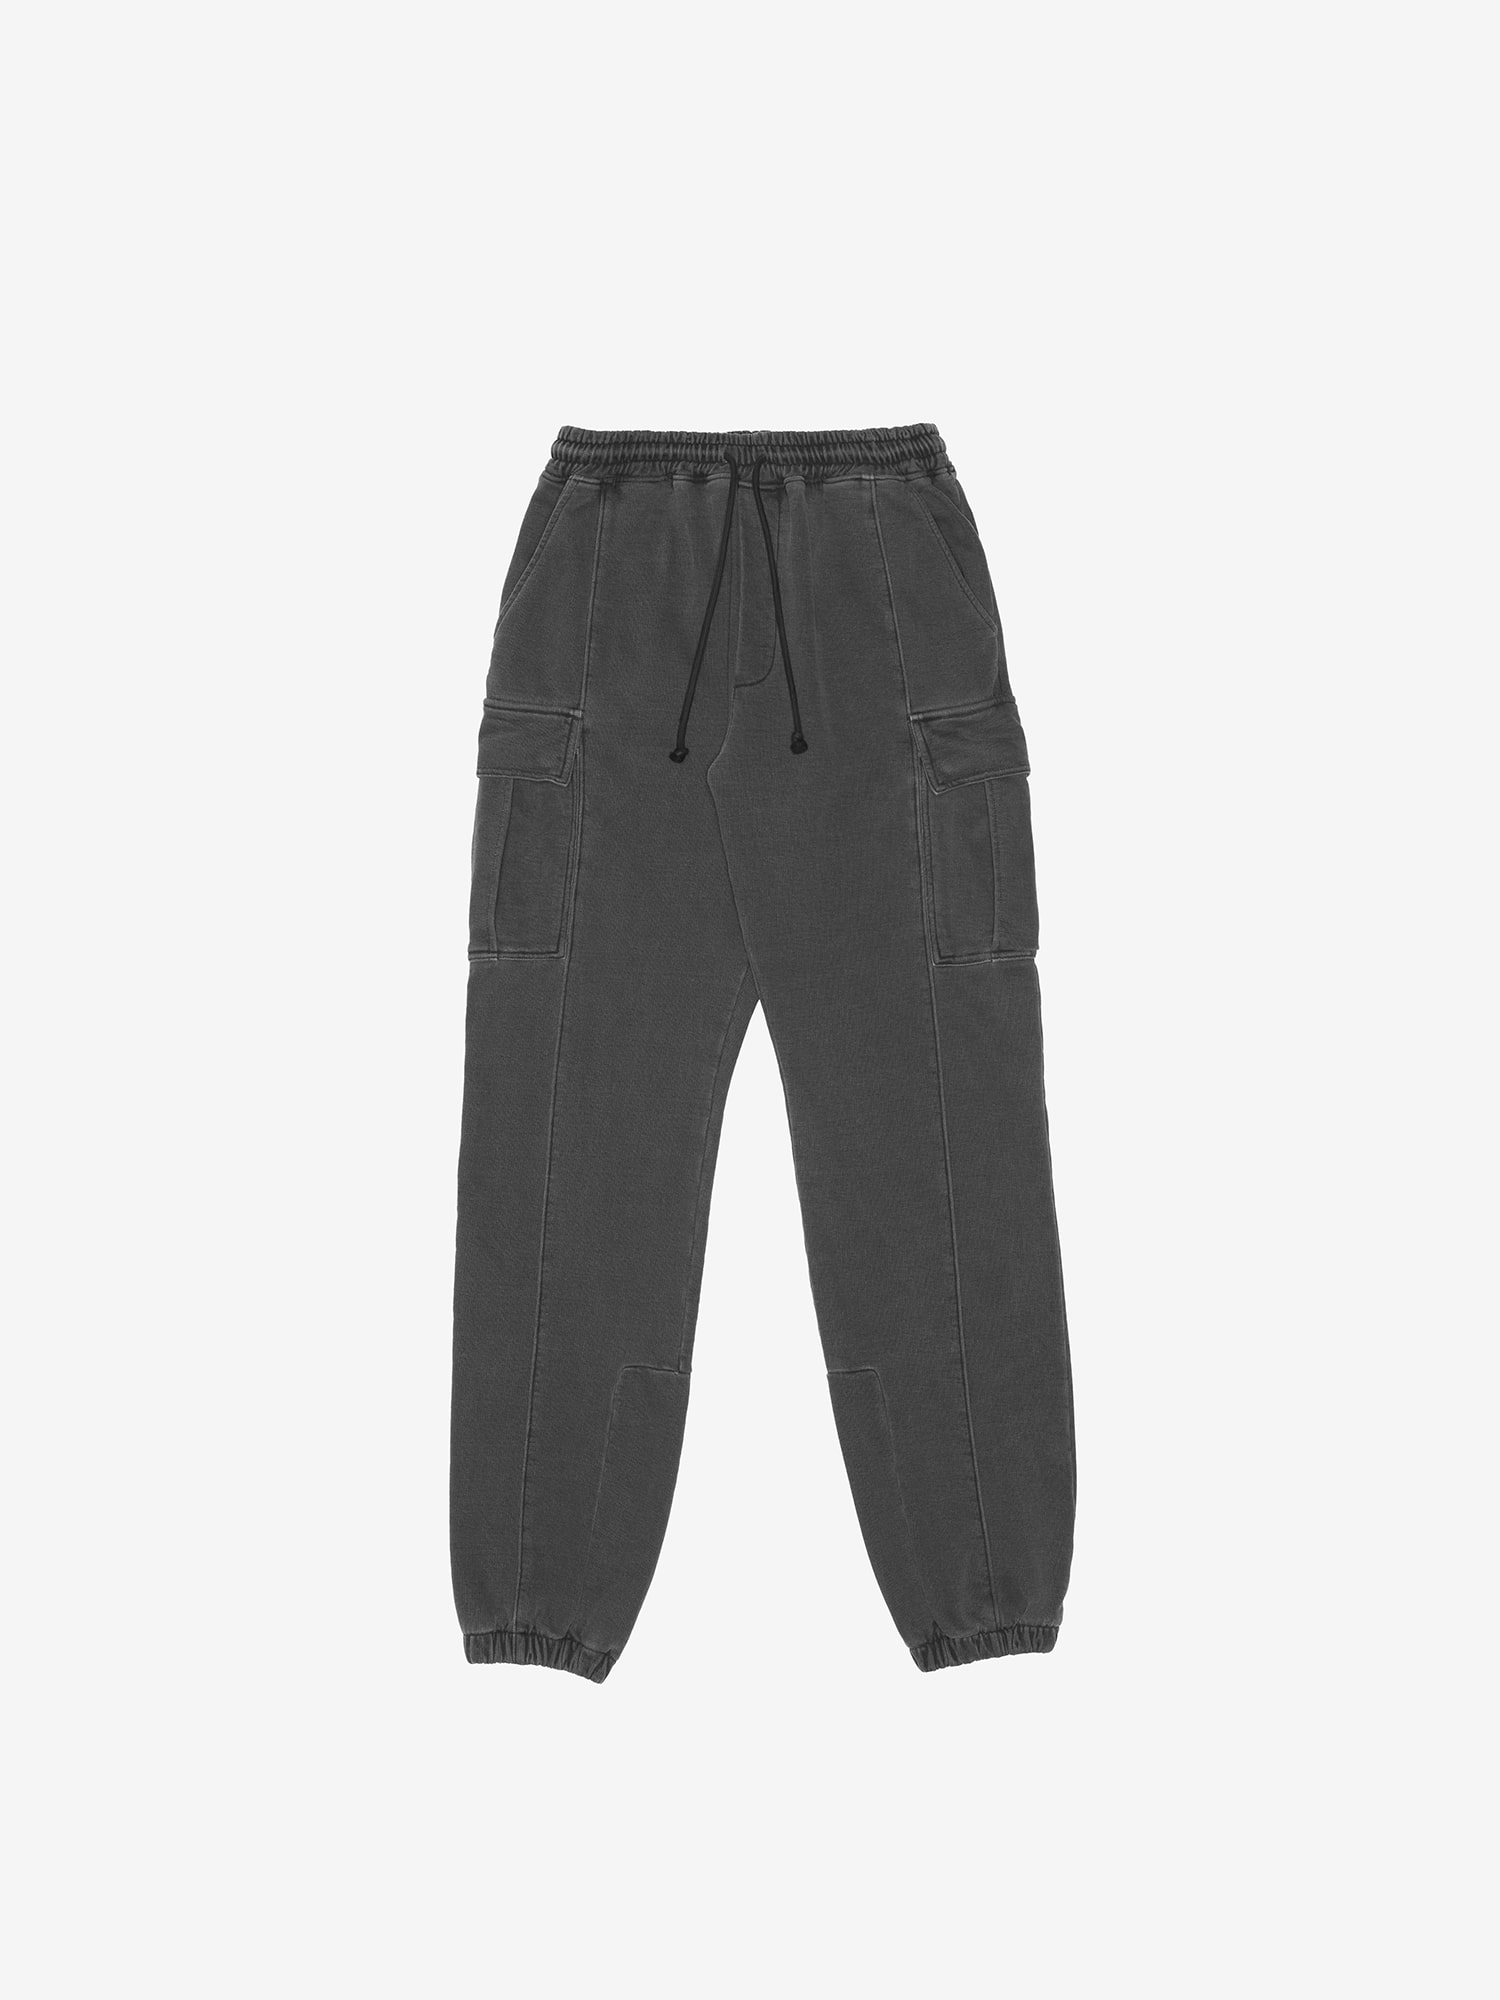 WASHED CARGO PANTS - BLACK